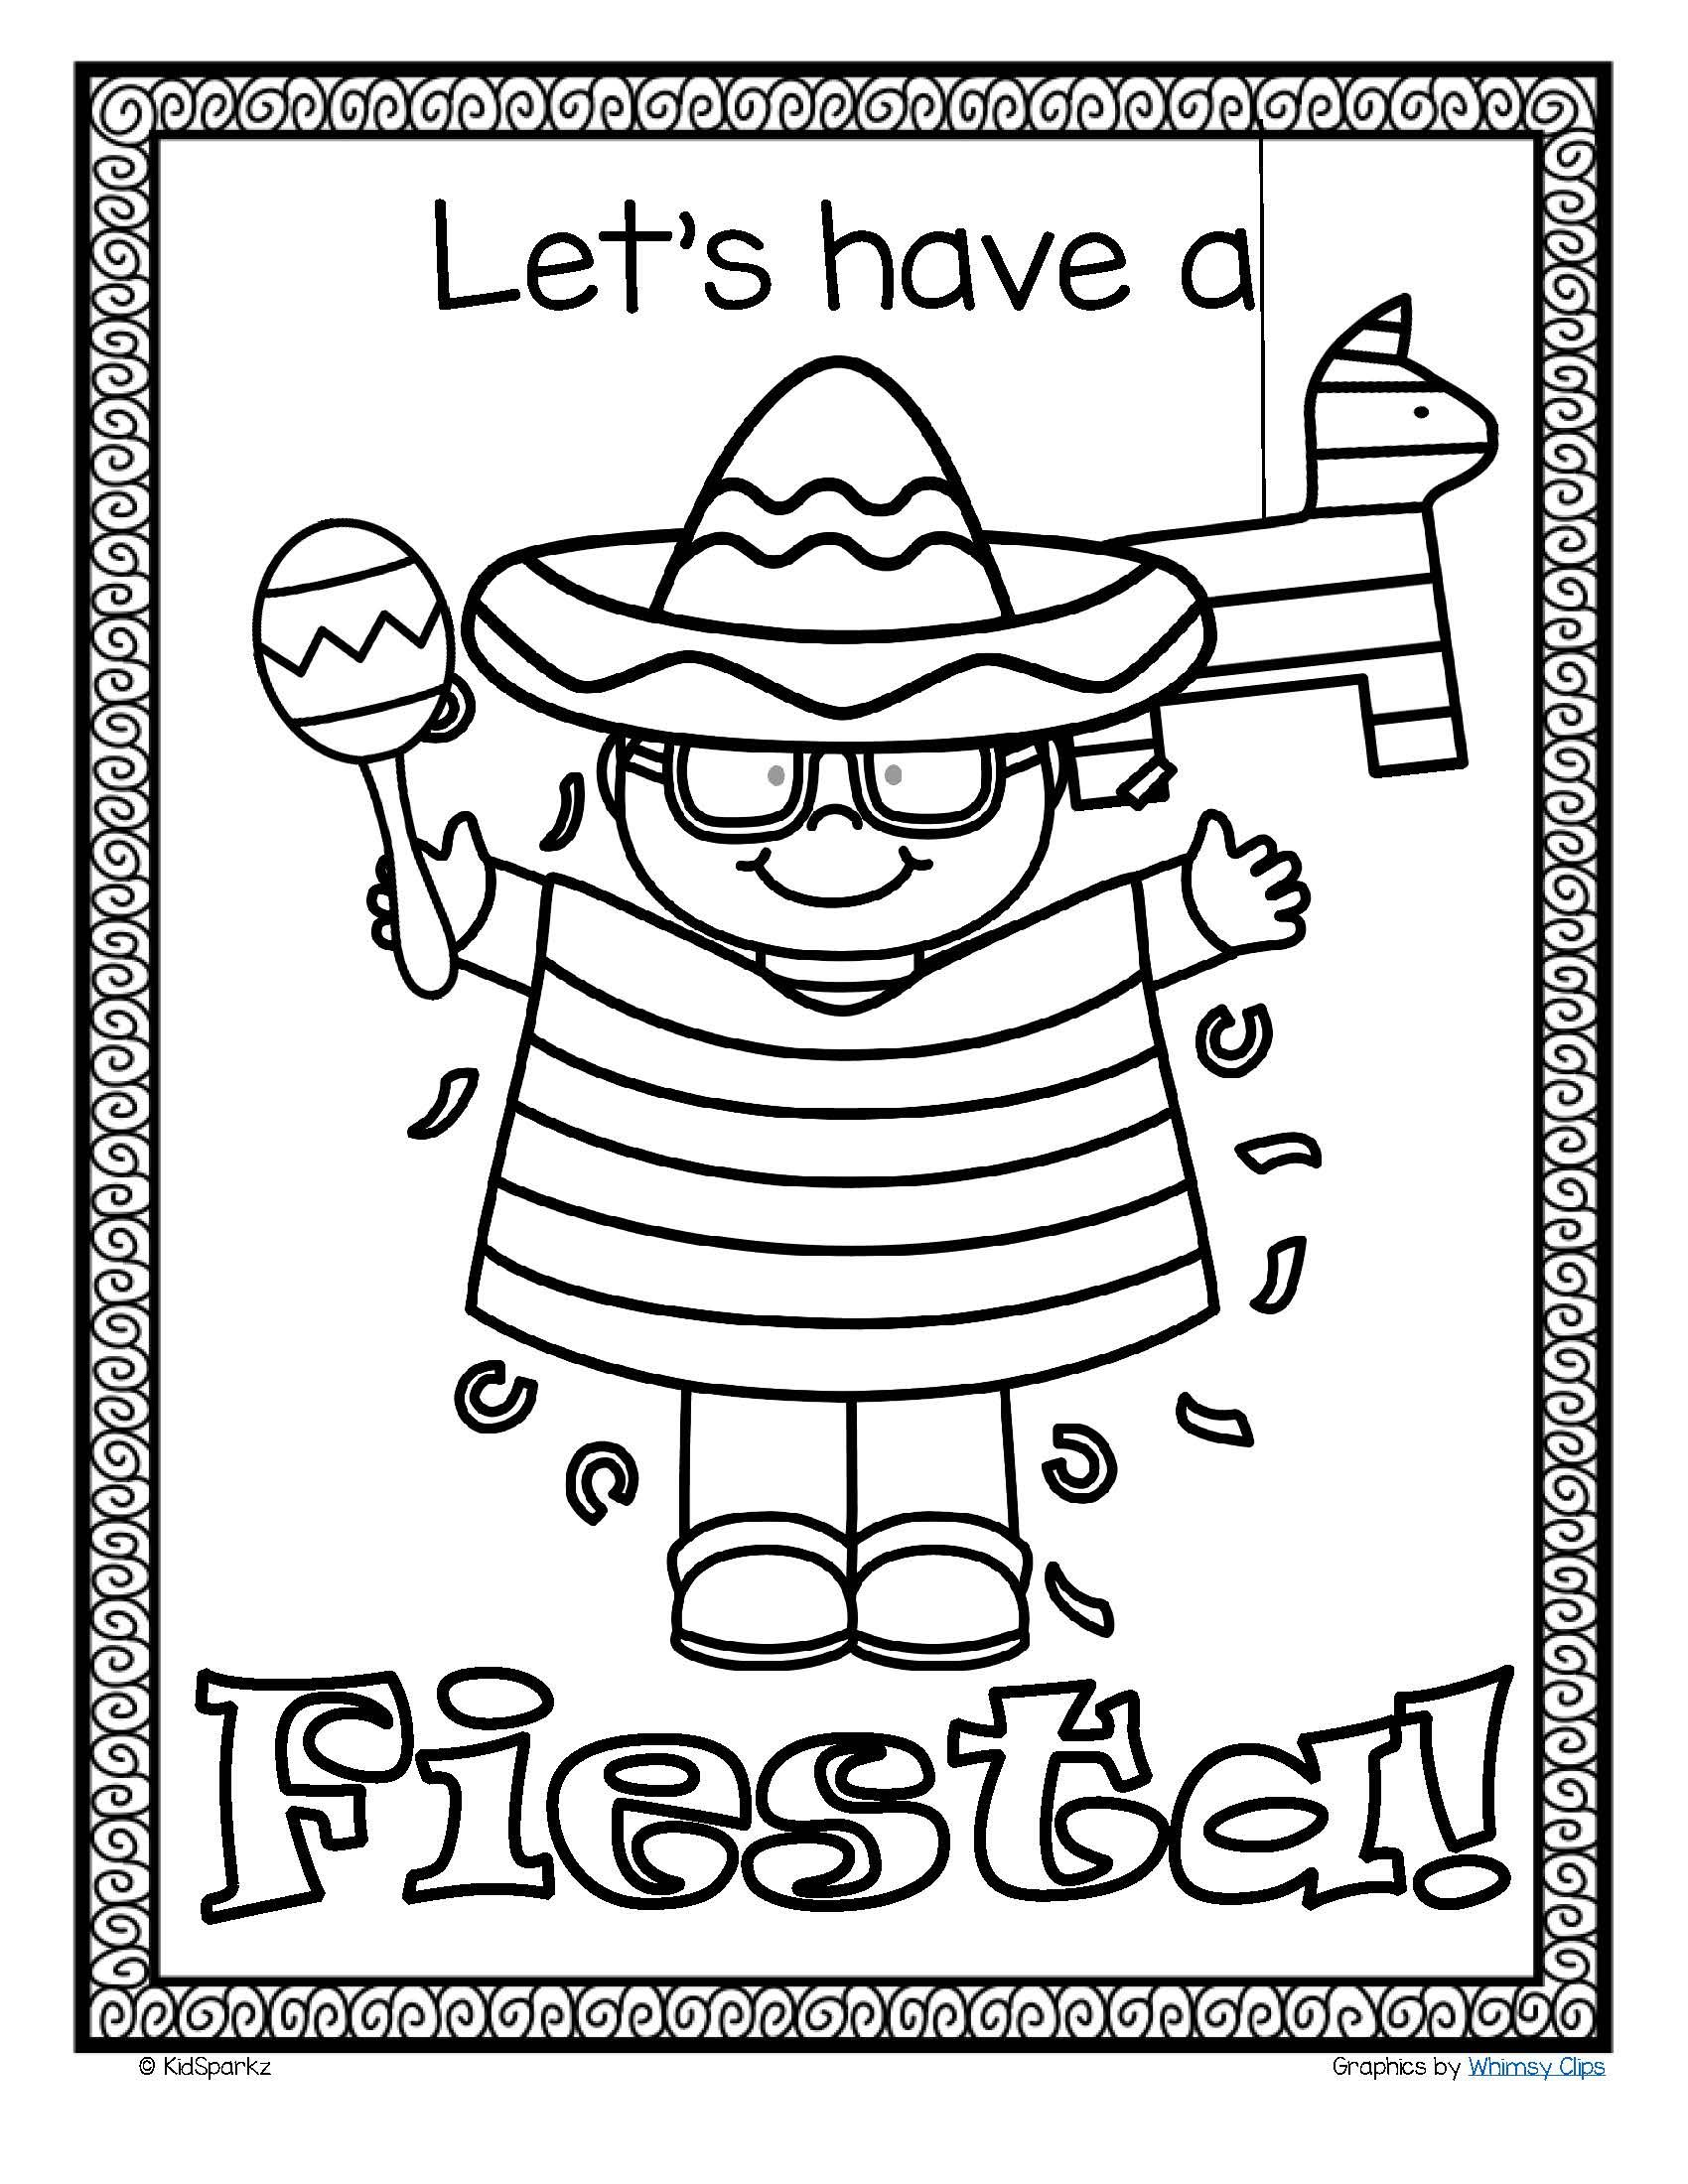 Free Cinco De Mayo Or Fiesta Poster In B W With